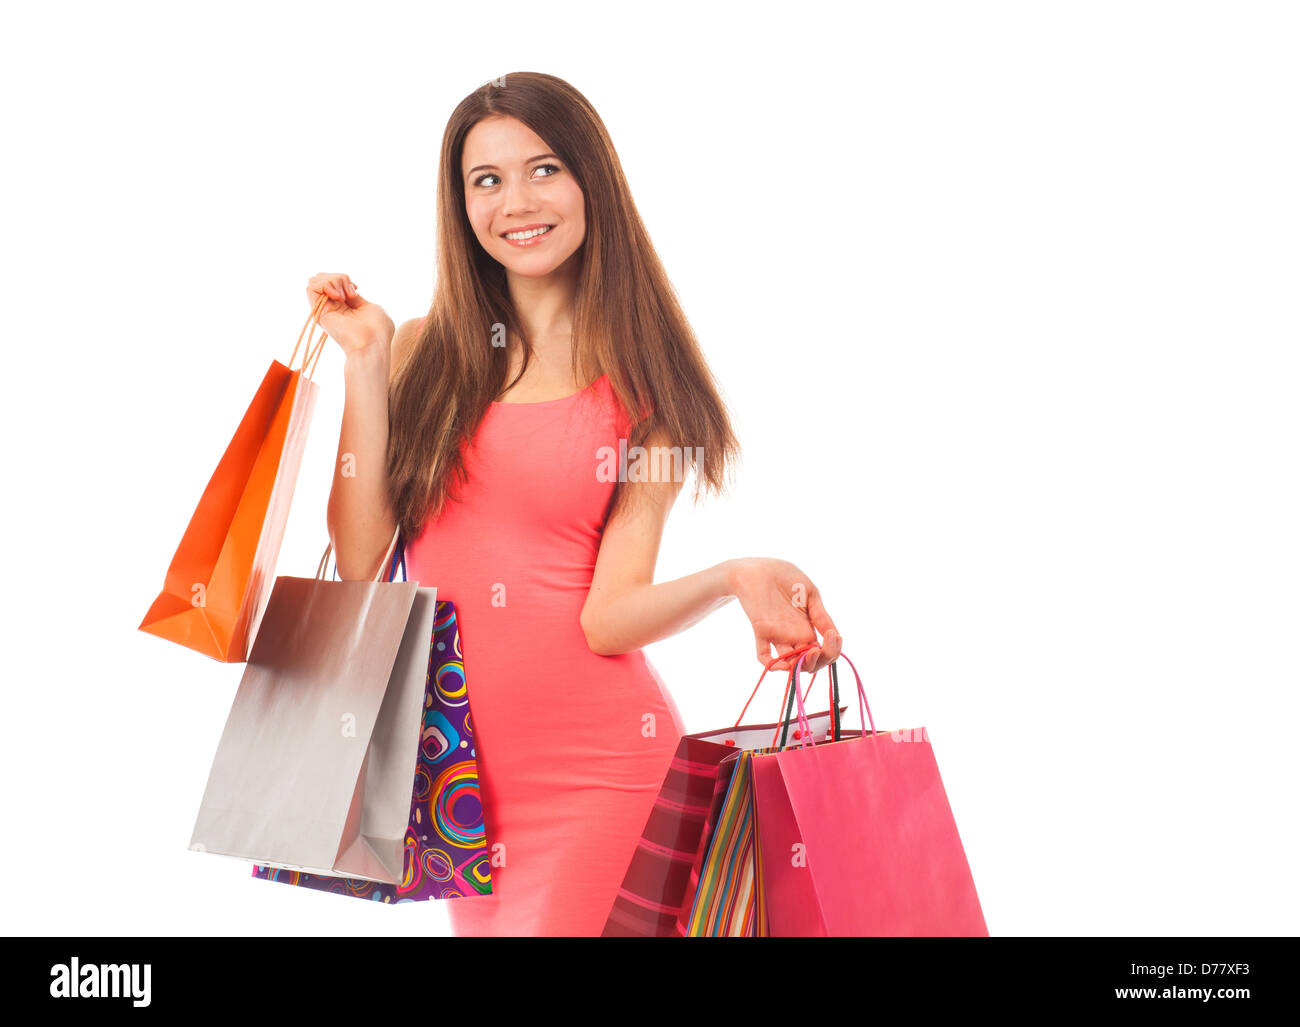 Pretty woman shopping, shopping, isolated on white Photo Stock